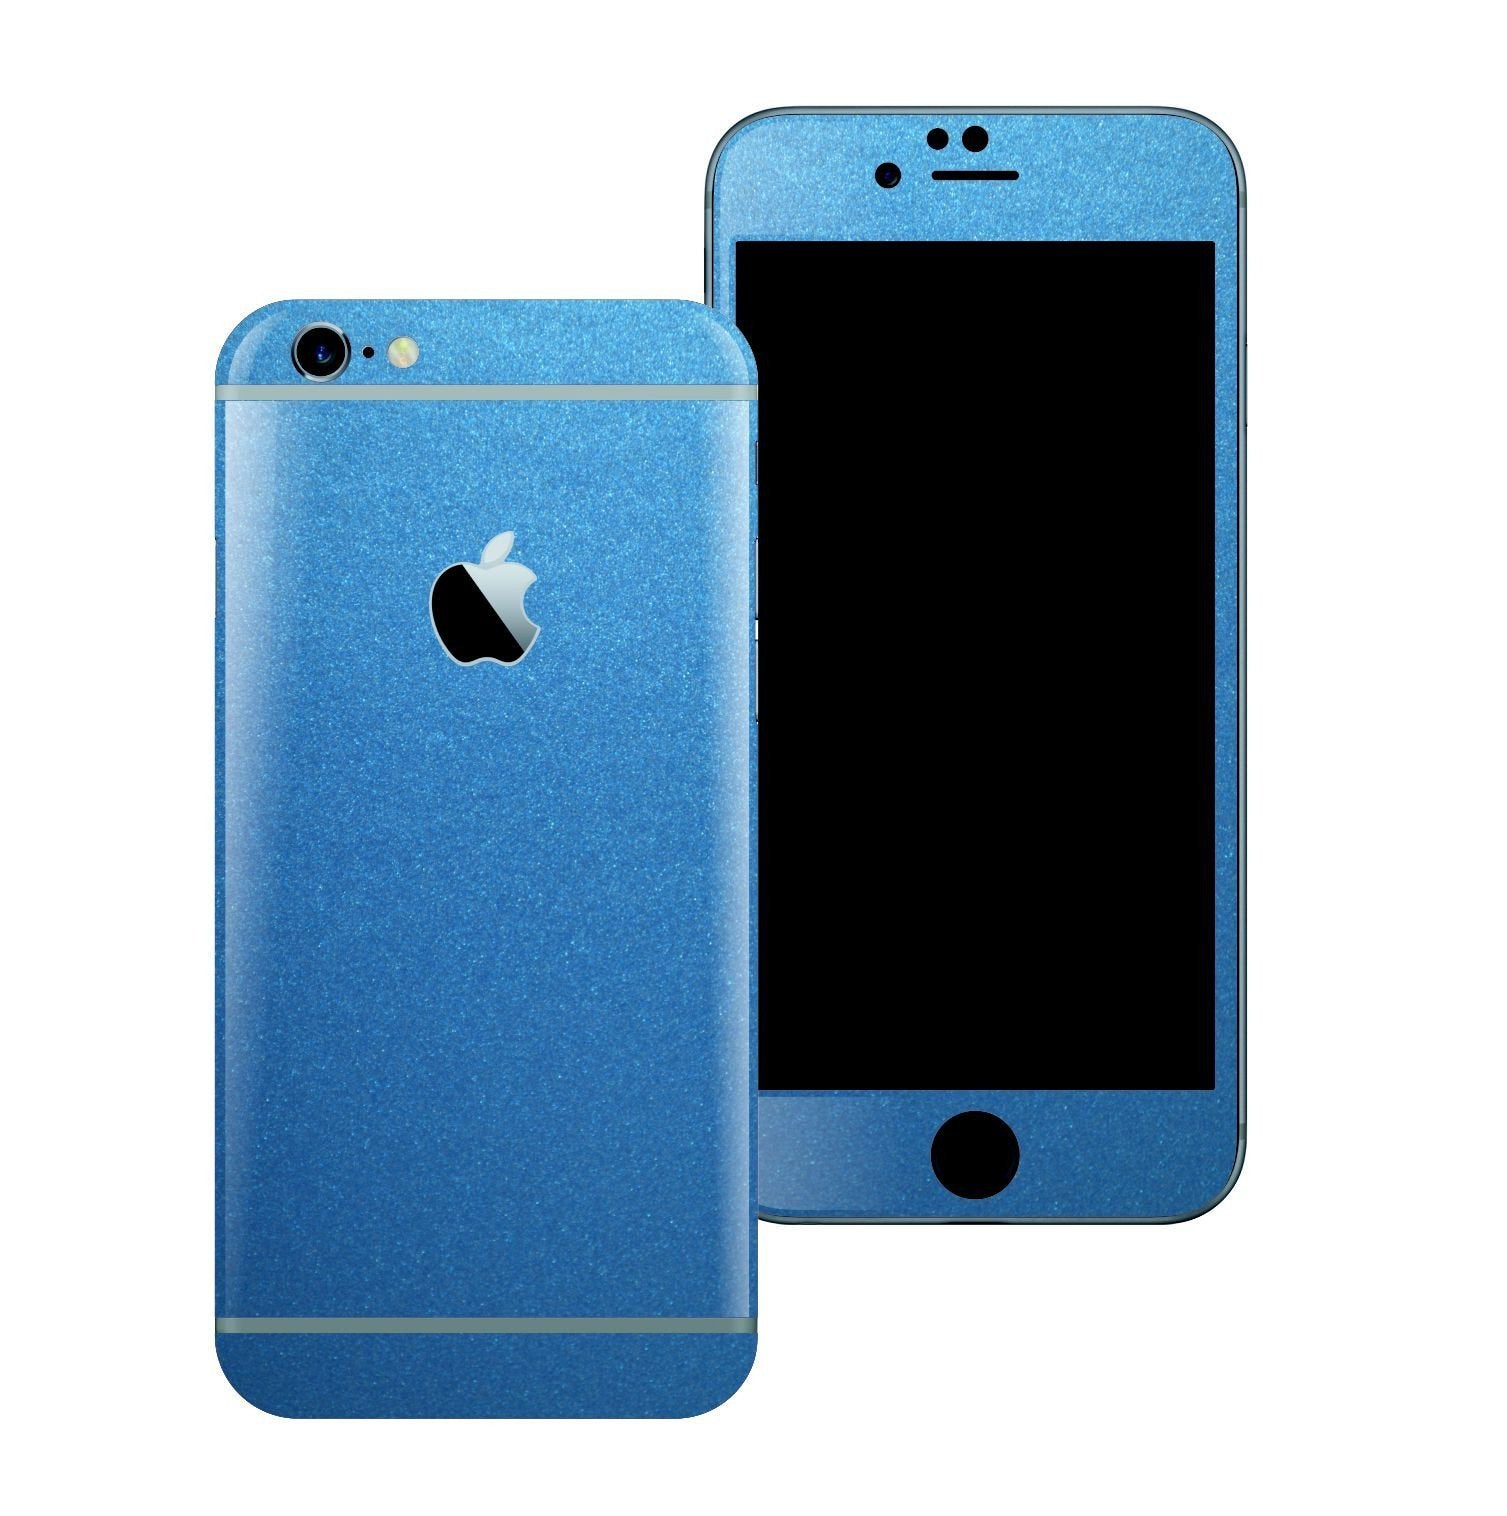 iPhone 6S Colorful Matt Azure Blue Metallic Skin Wrap Sticker Cover Protector Decal by EasySkinz